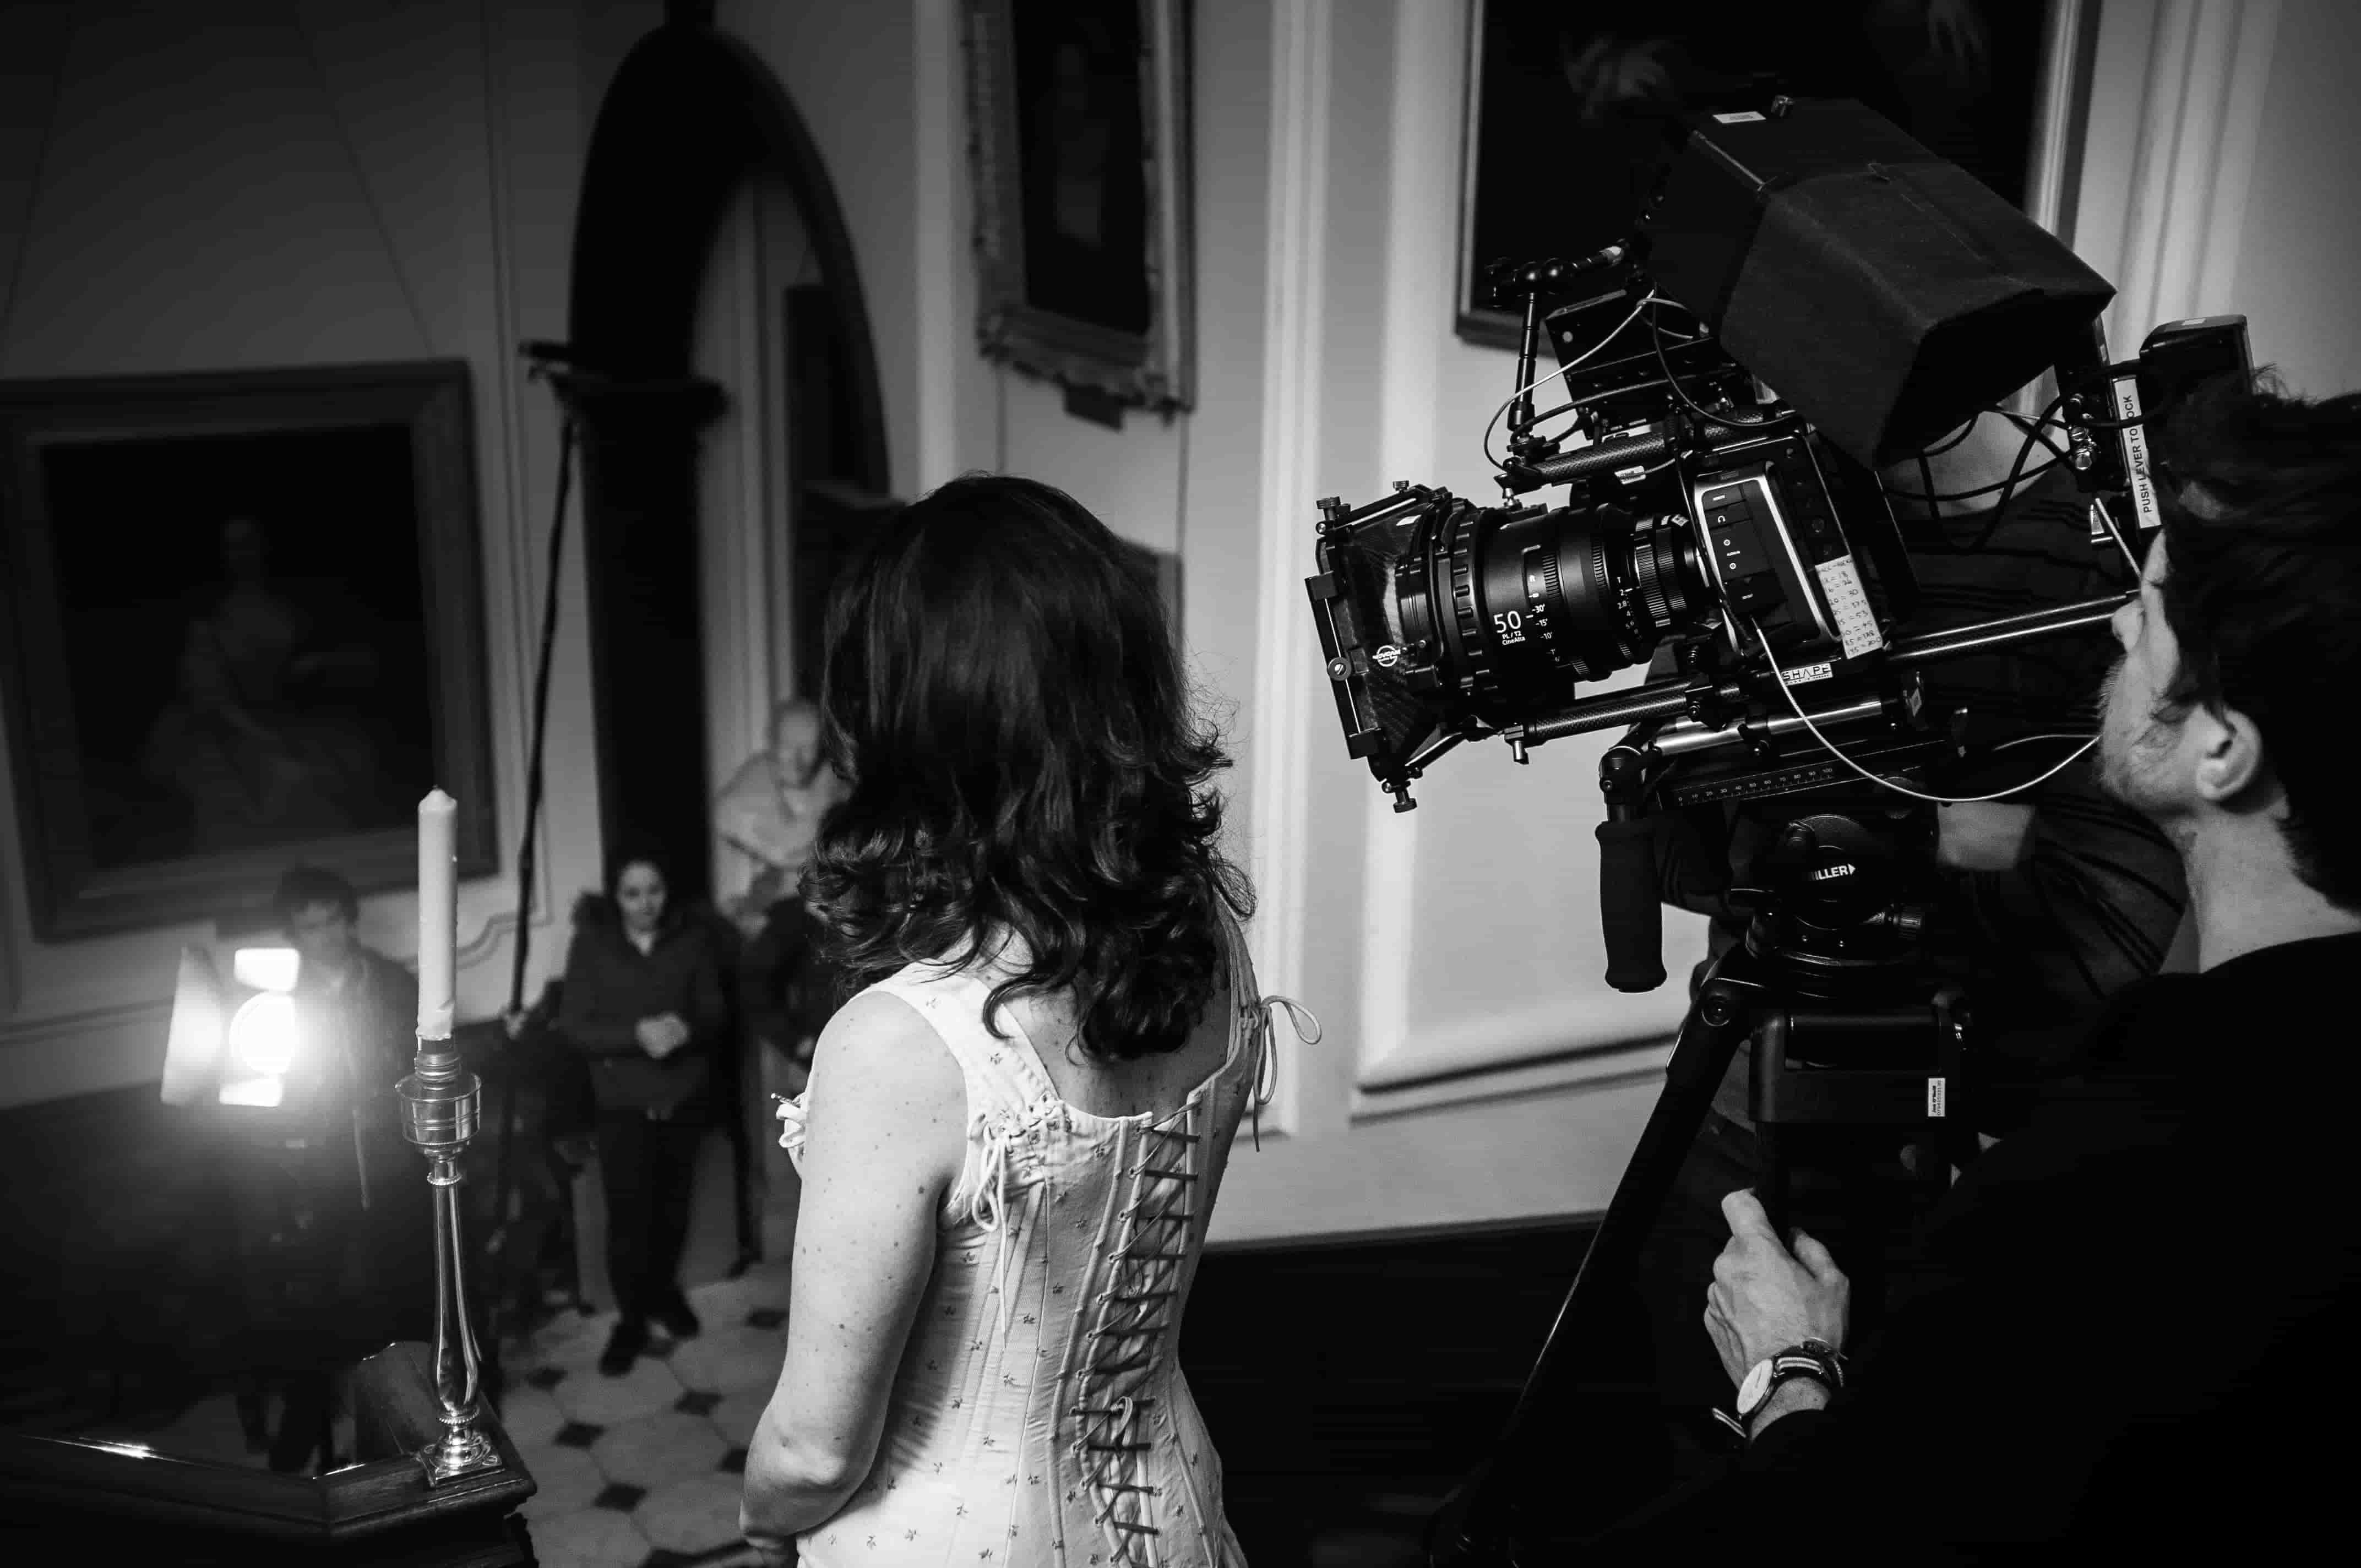 video production nottingham - camera and lady in white dress